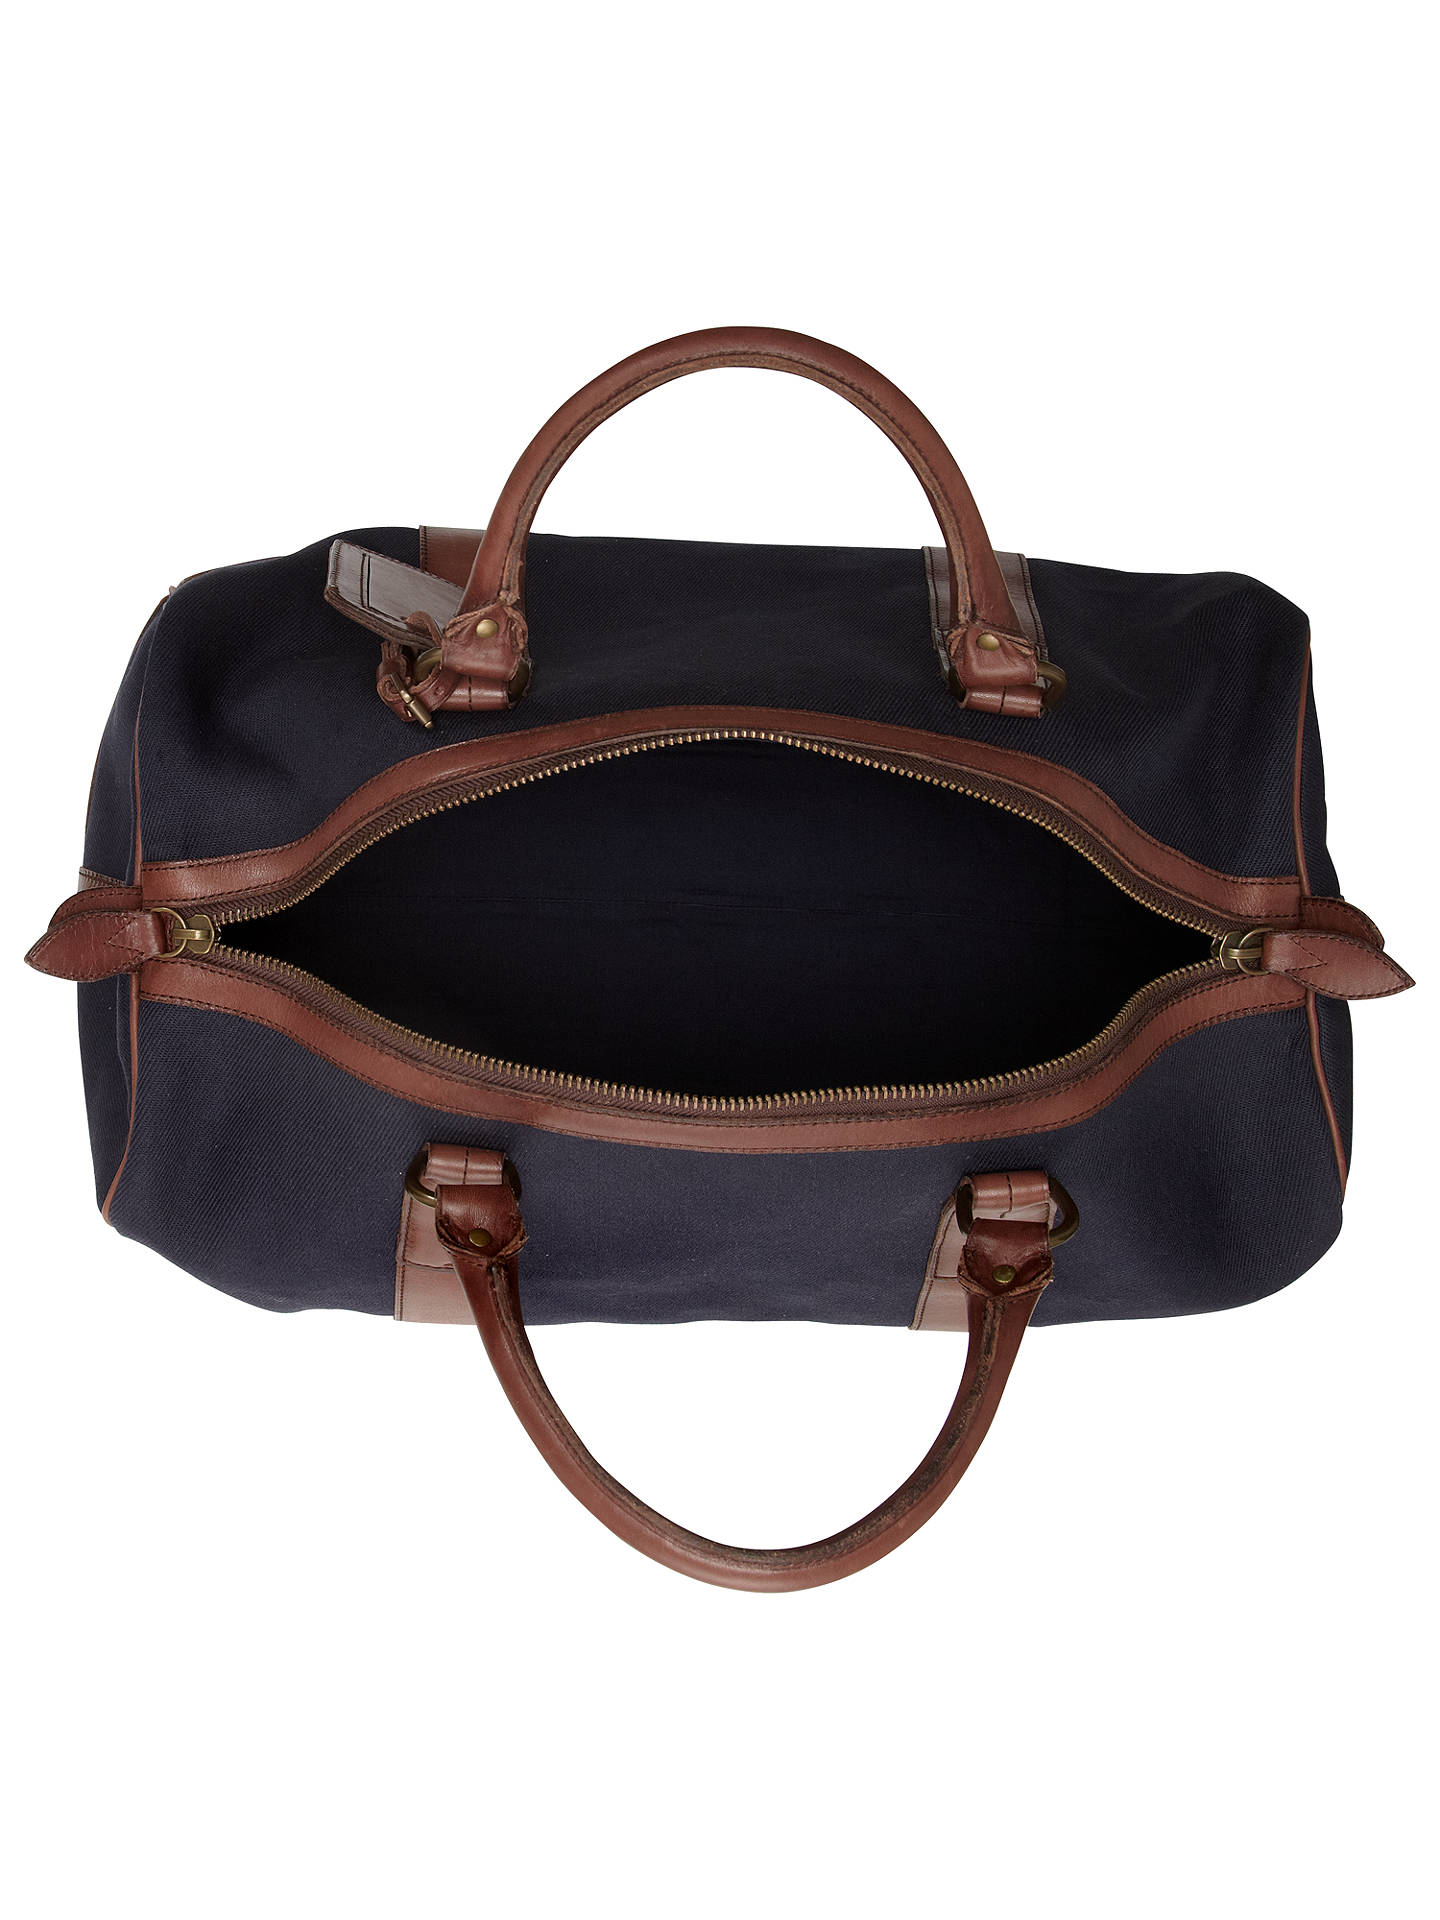 Gym Polo Leather Lewis Canvas At And Ralph Lauren John BagNavy doQrxBCWe